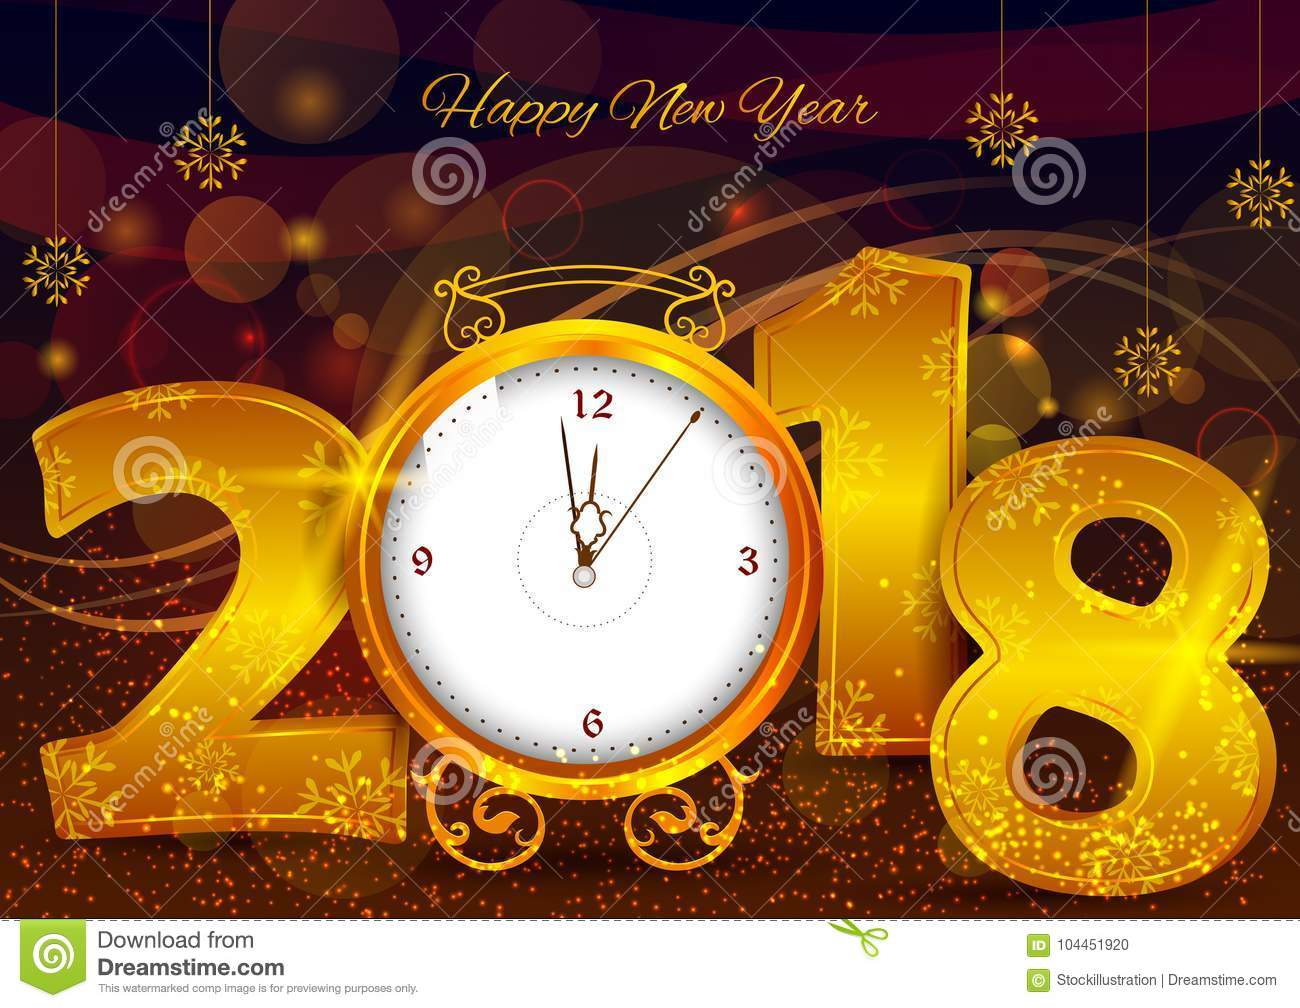 Happy New Year 2018 Wishes Greeting Card Template ...